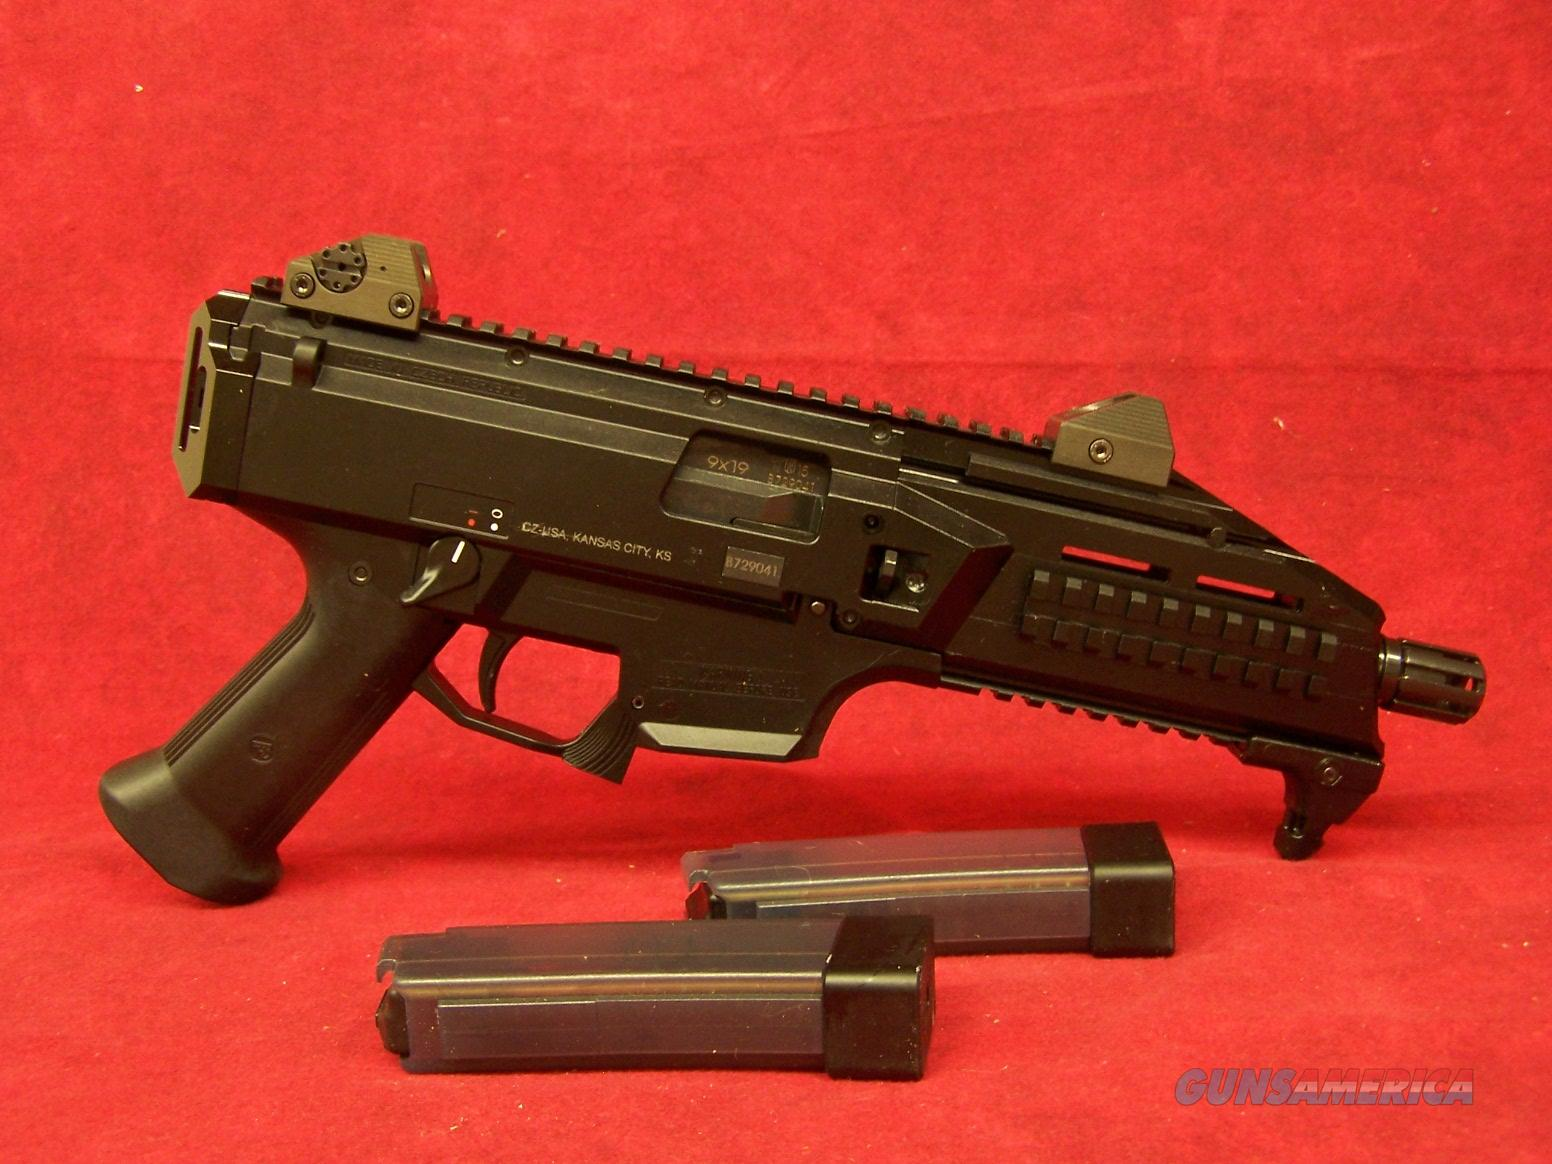 "CZ Scorpion EVO 3 S1 9mm 7.75"" Barrel Low-Pro Sights Pic Rail 20 Round (91350)  Guns > Pistols > CZ Pistols"